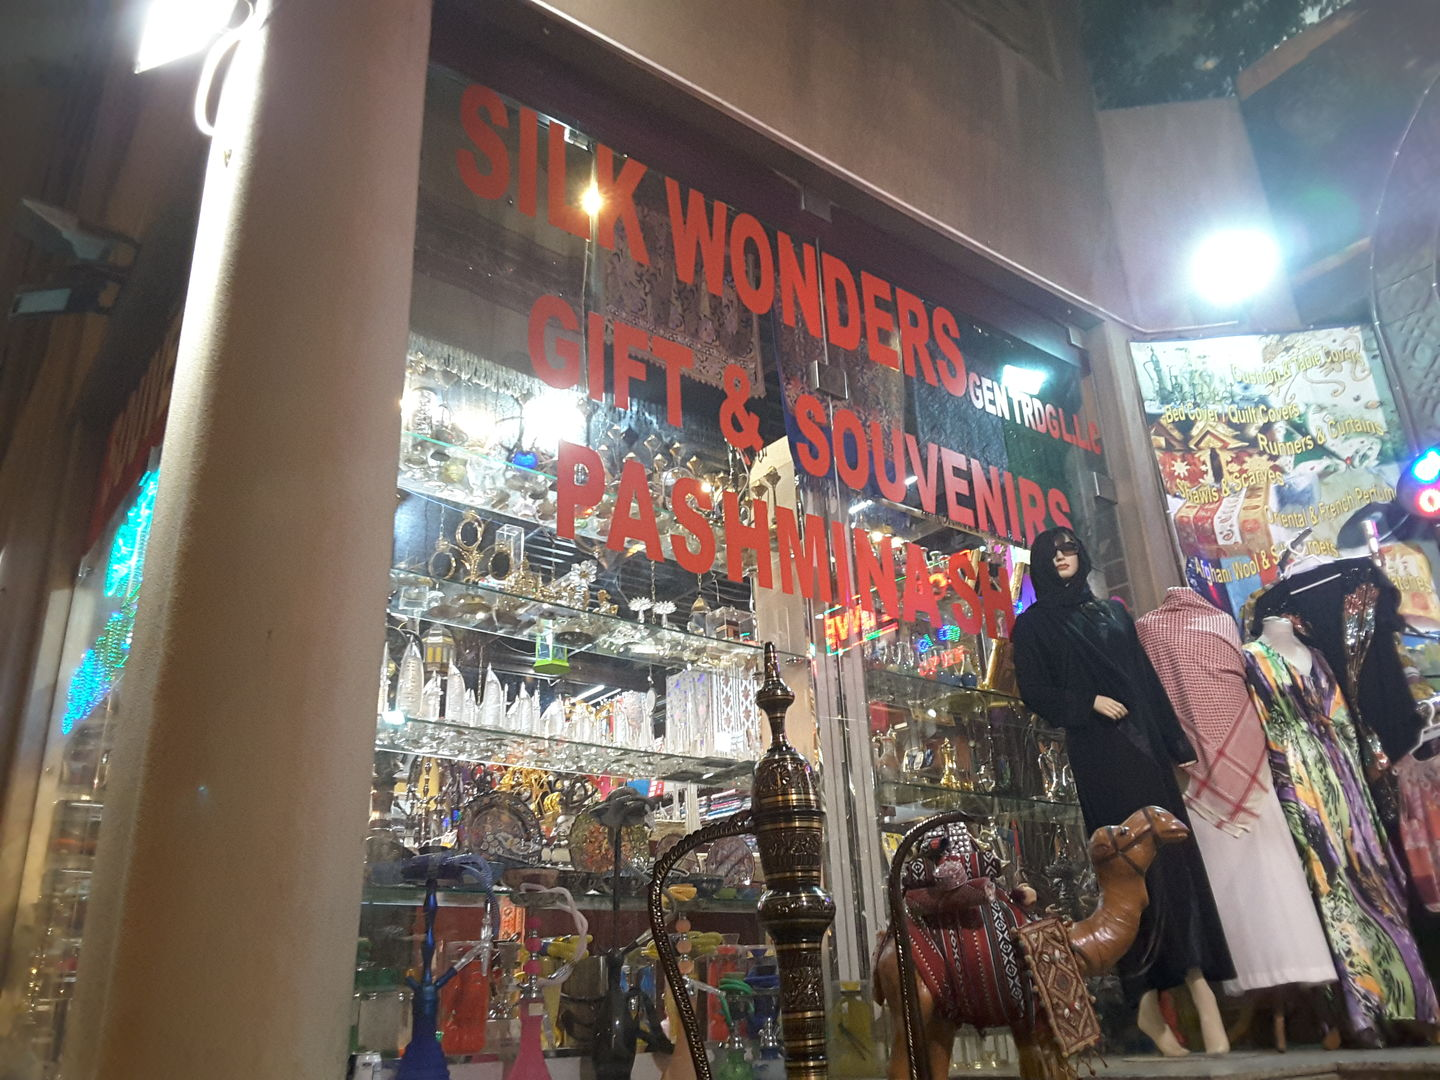 HiDubai-business-silk-wonders-general-trading-shopping-souvenirs-gifts-al-fahidi-al-souq-al-kabeer-dubai-2